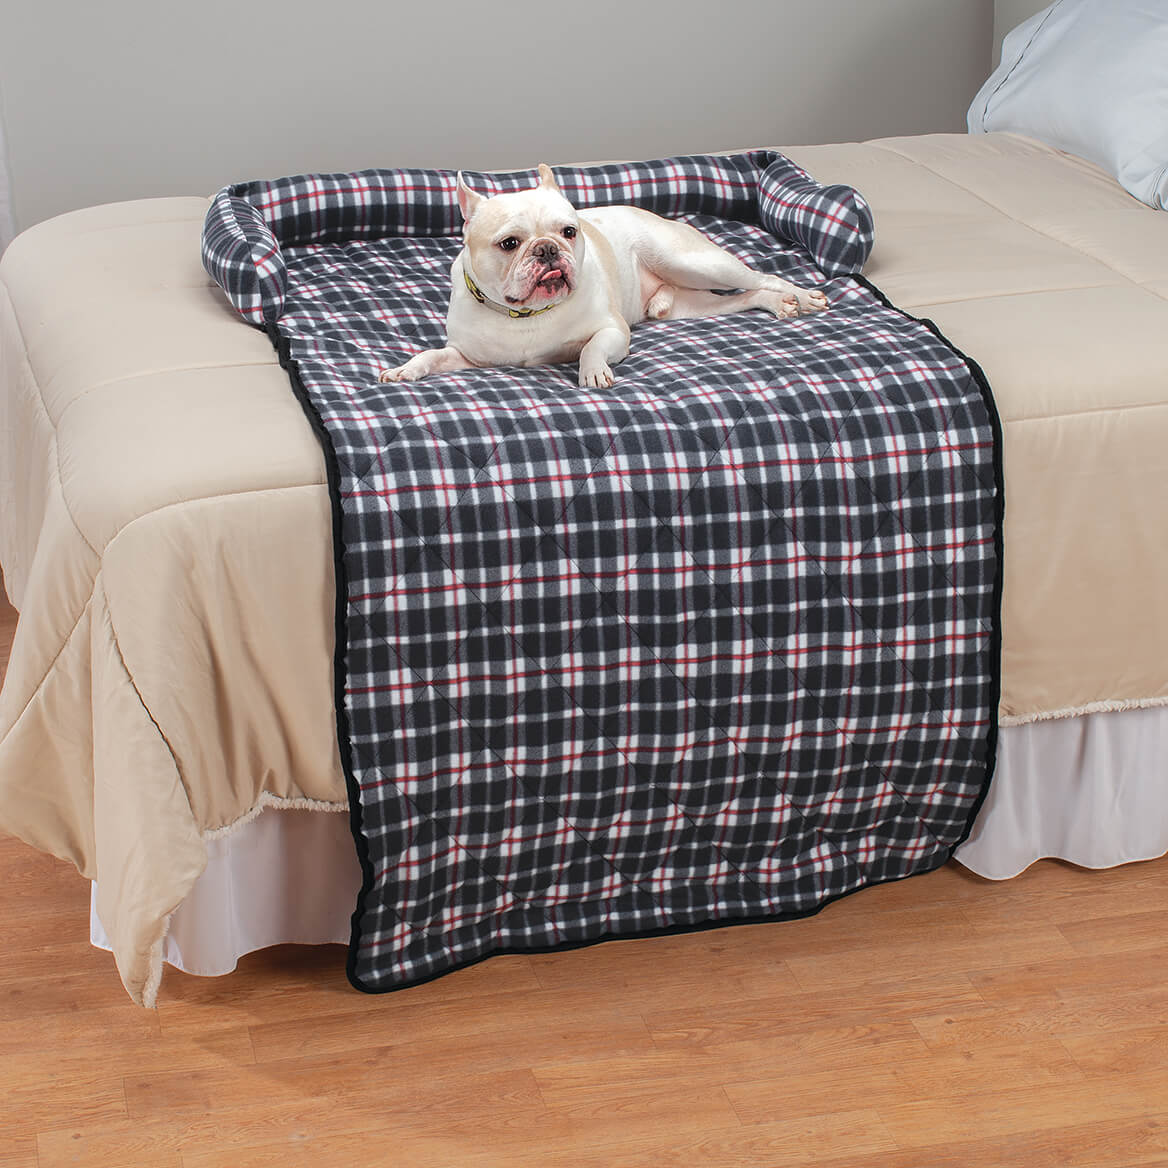 Plaid Bolstered Pet Bed and Cover-370688